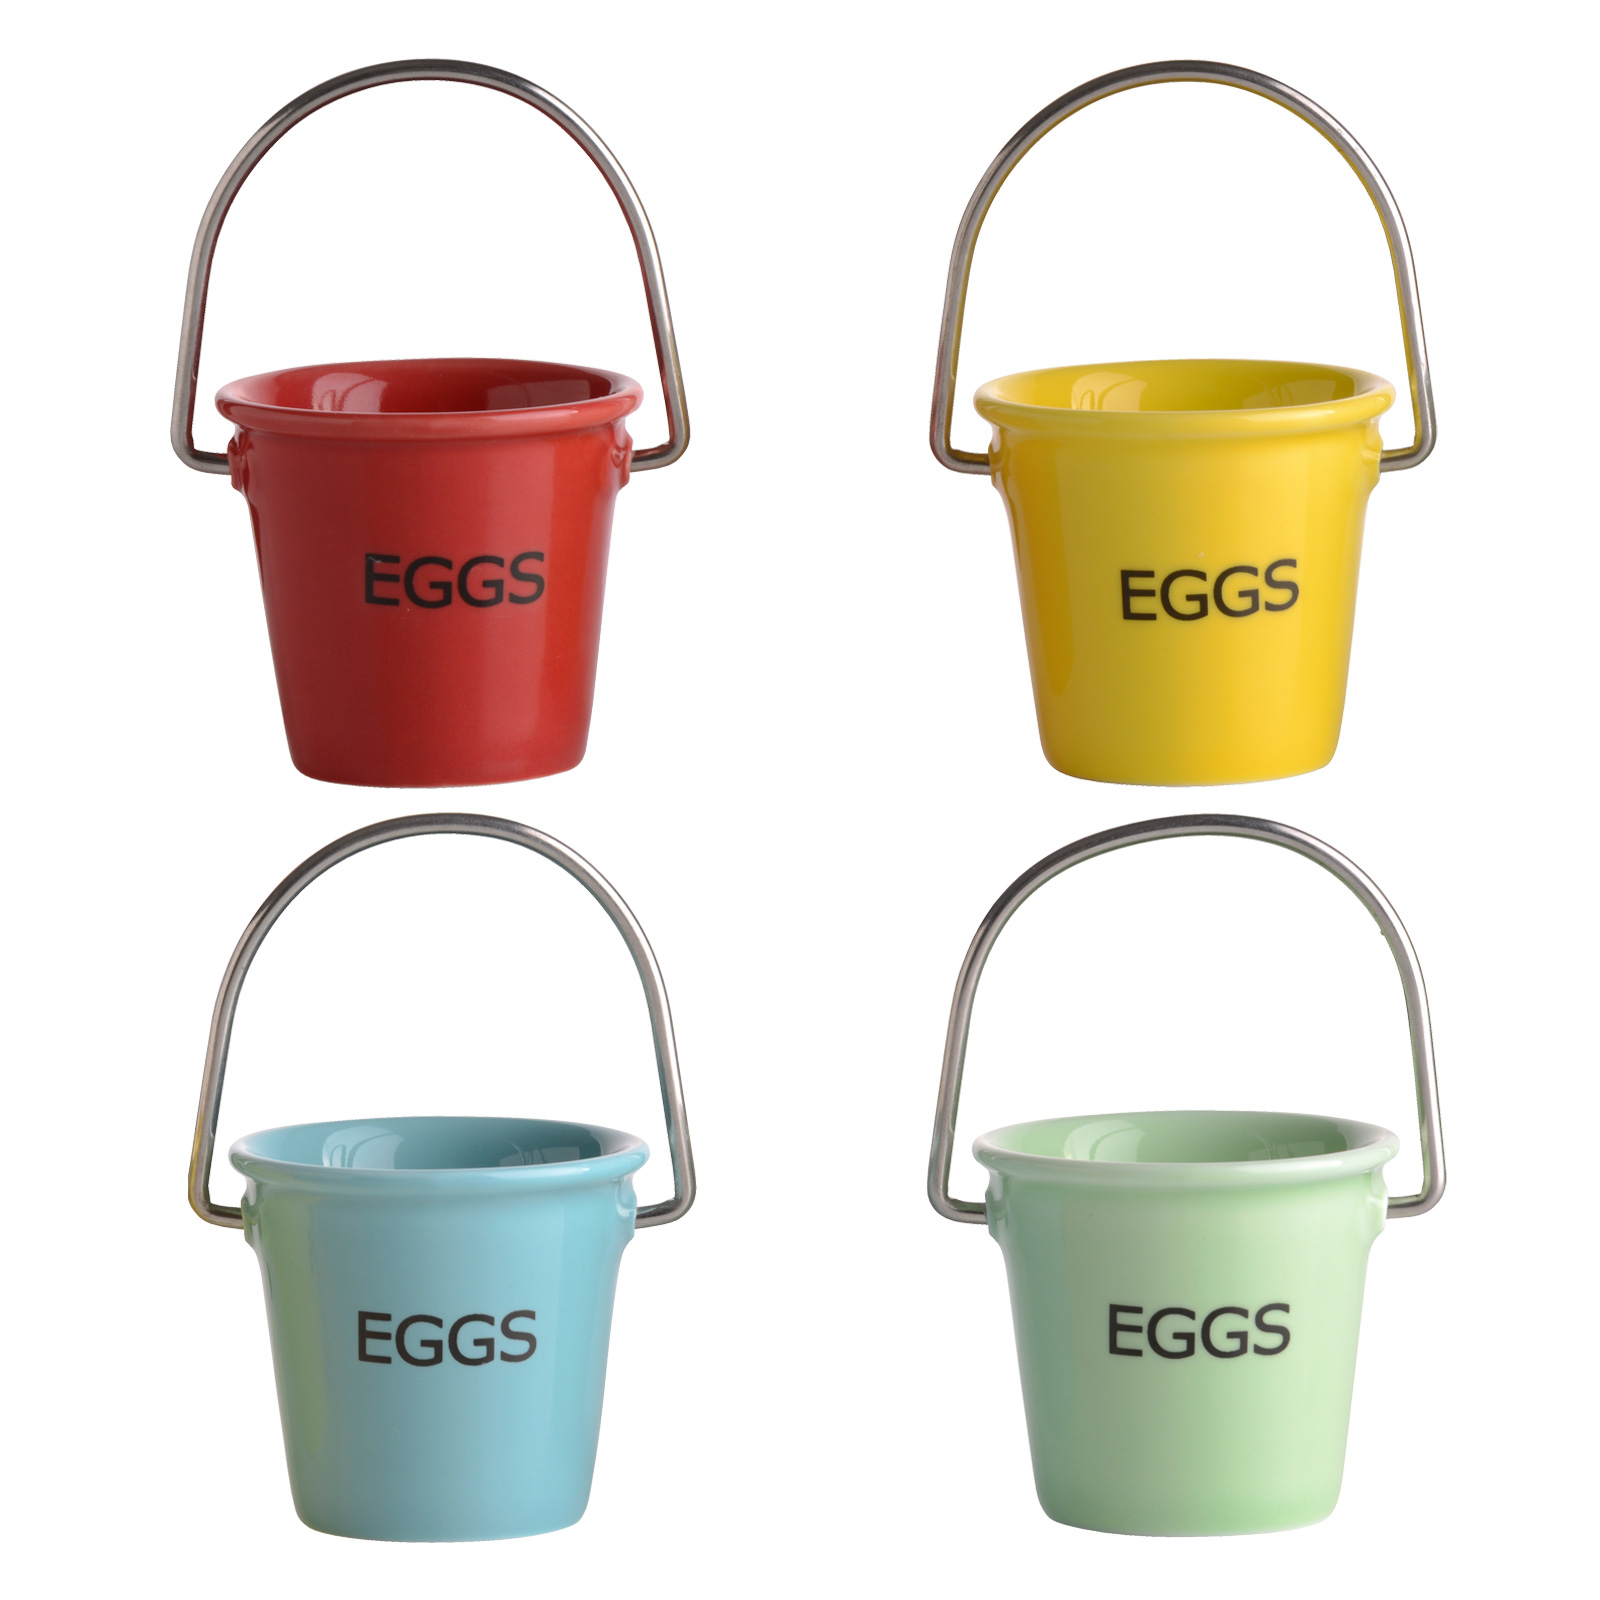 Set of 4 Egg Pails by BIA